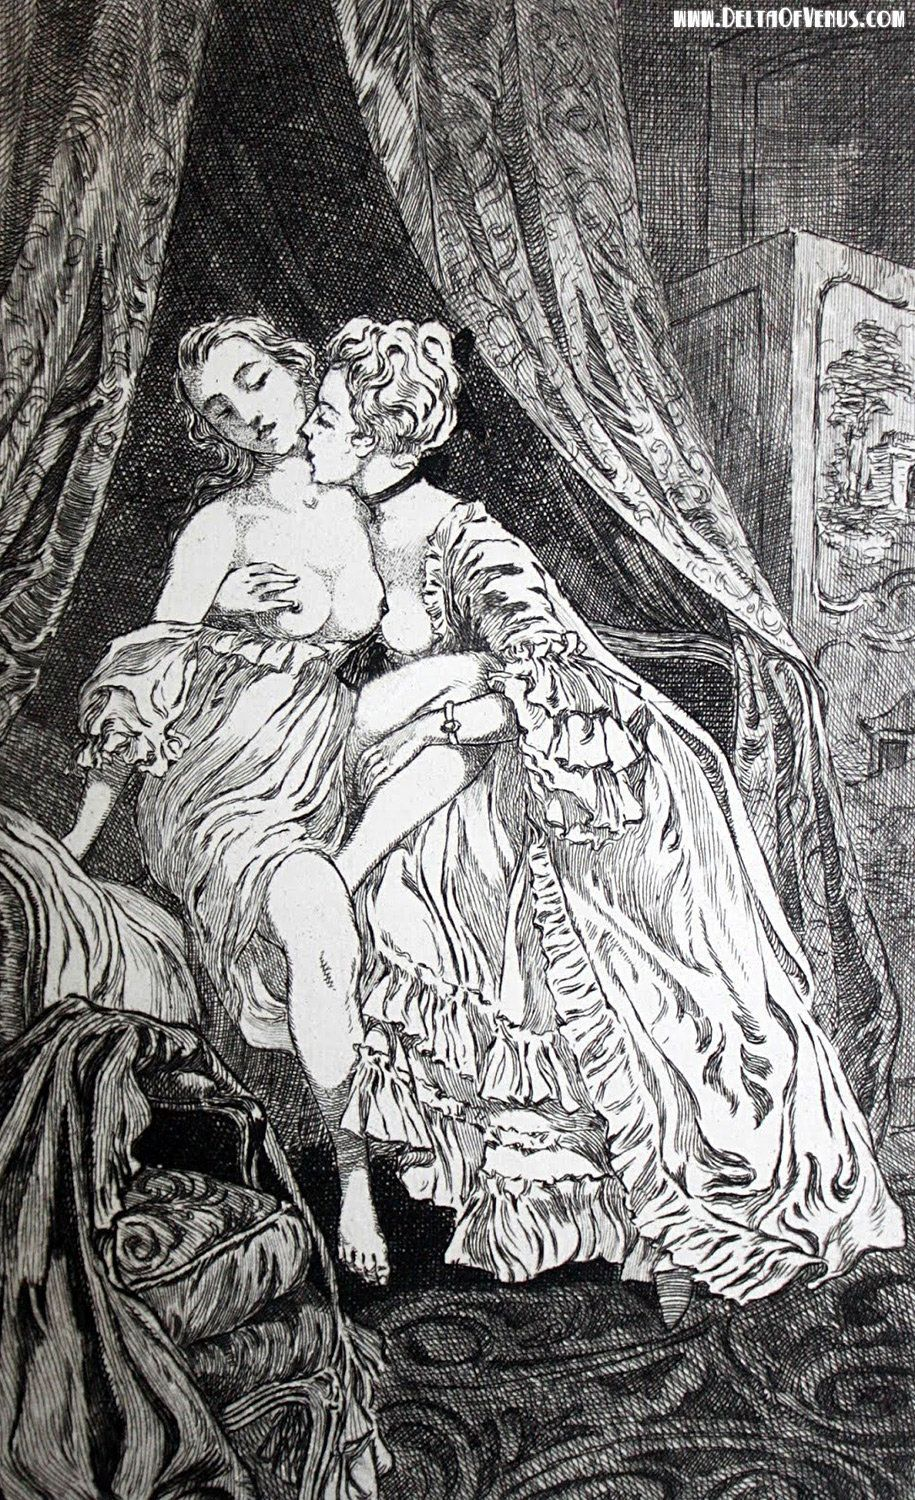 Dive Into The Fantasies Of An Obscure 19th Century Erotic